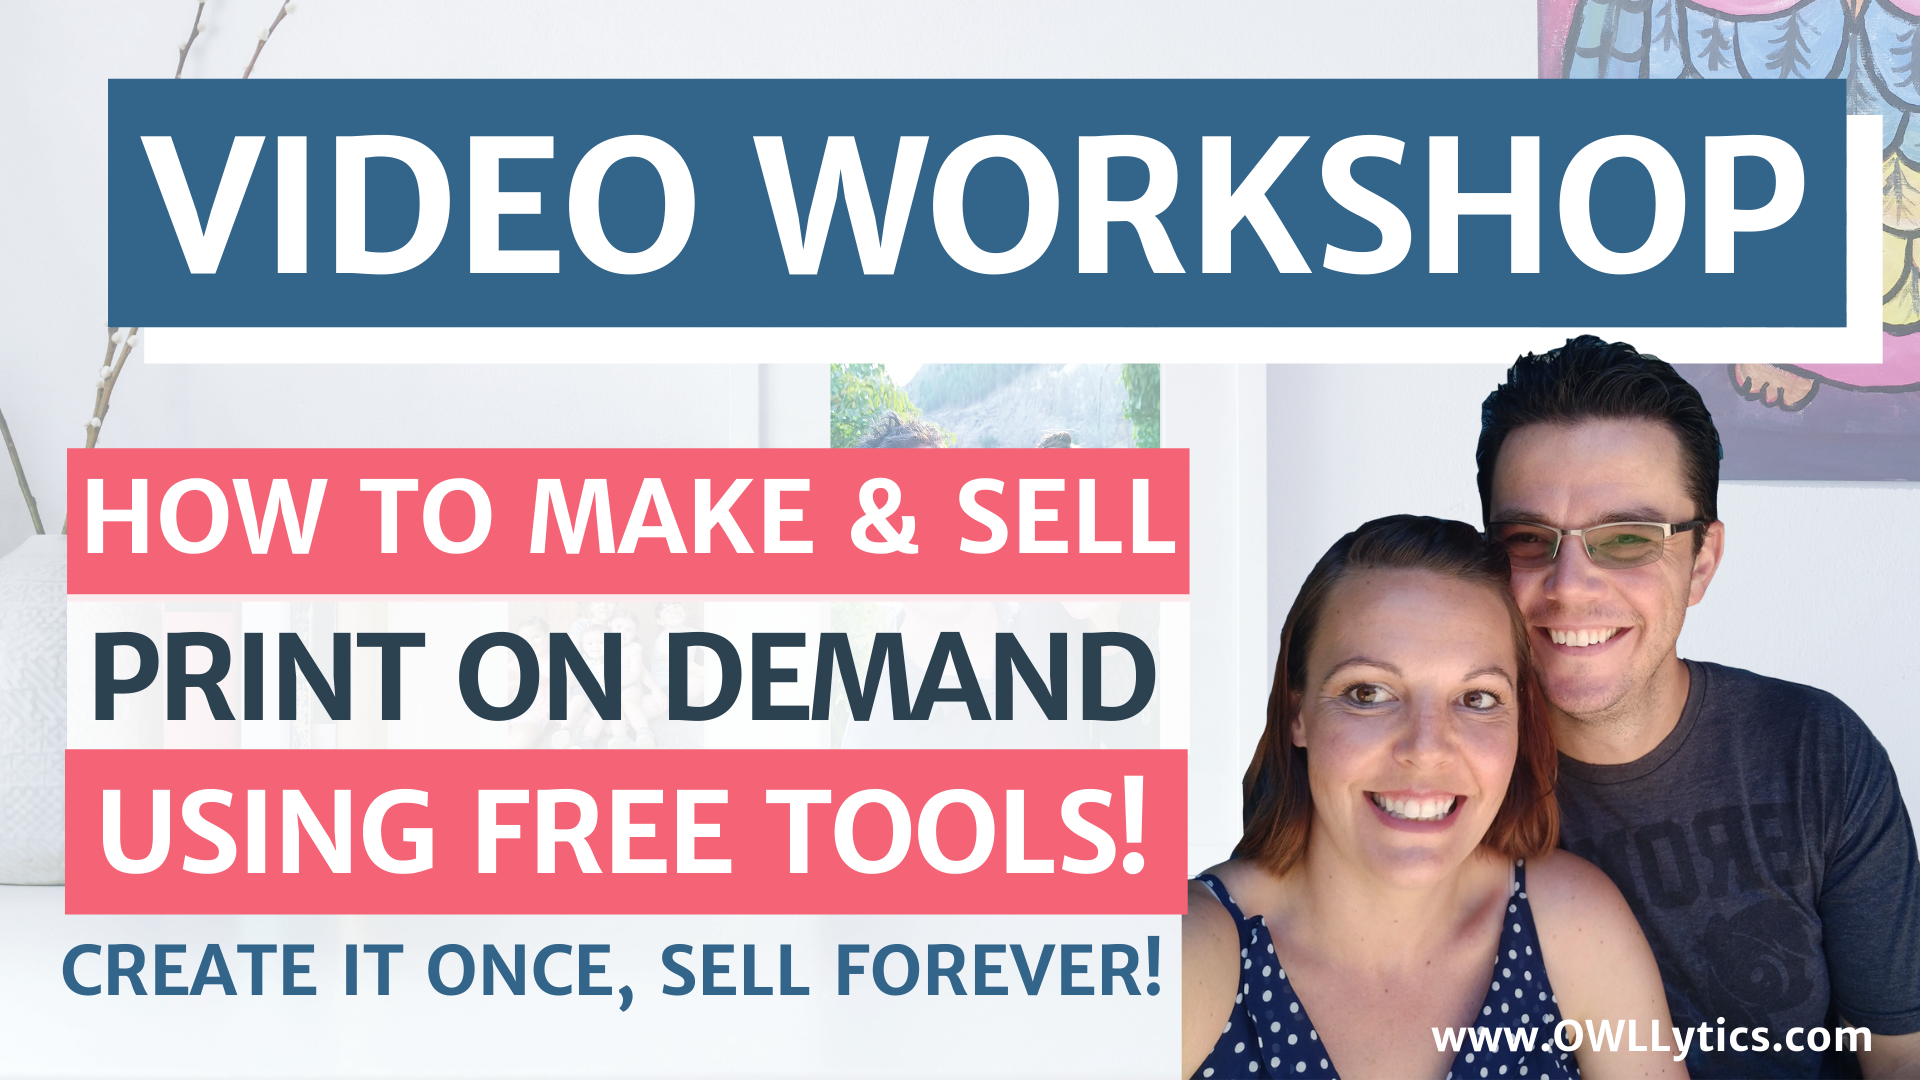 VIDEO Workshop: Make & Sell Print On Demand Products Using Only FREE Canva Tools!